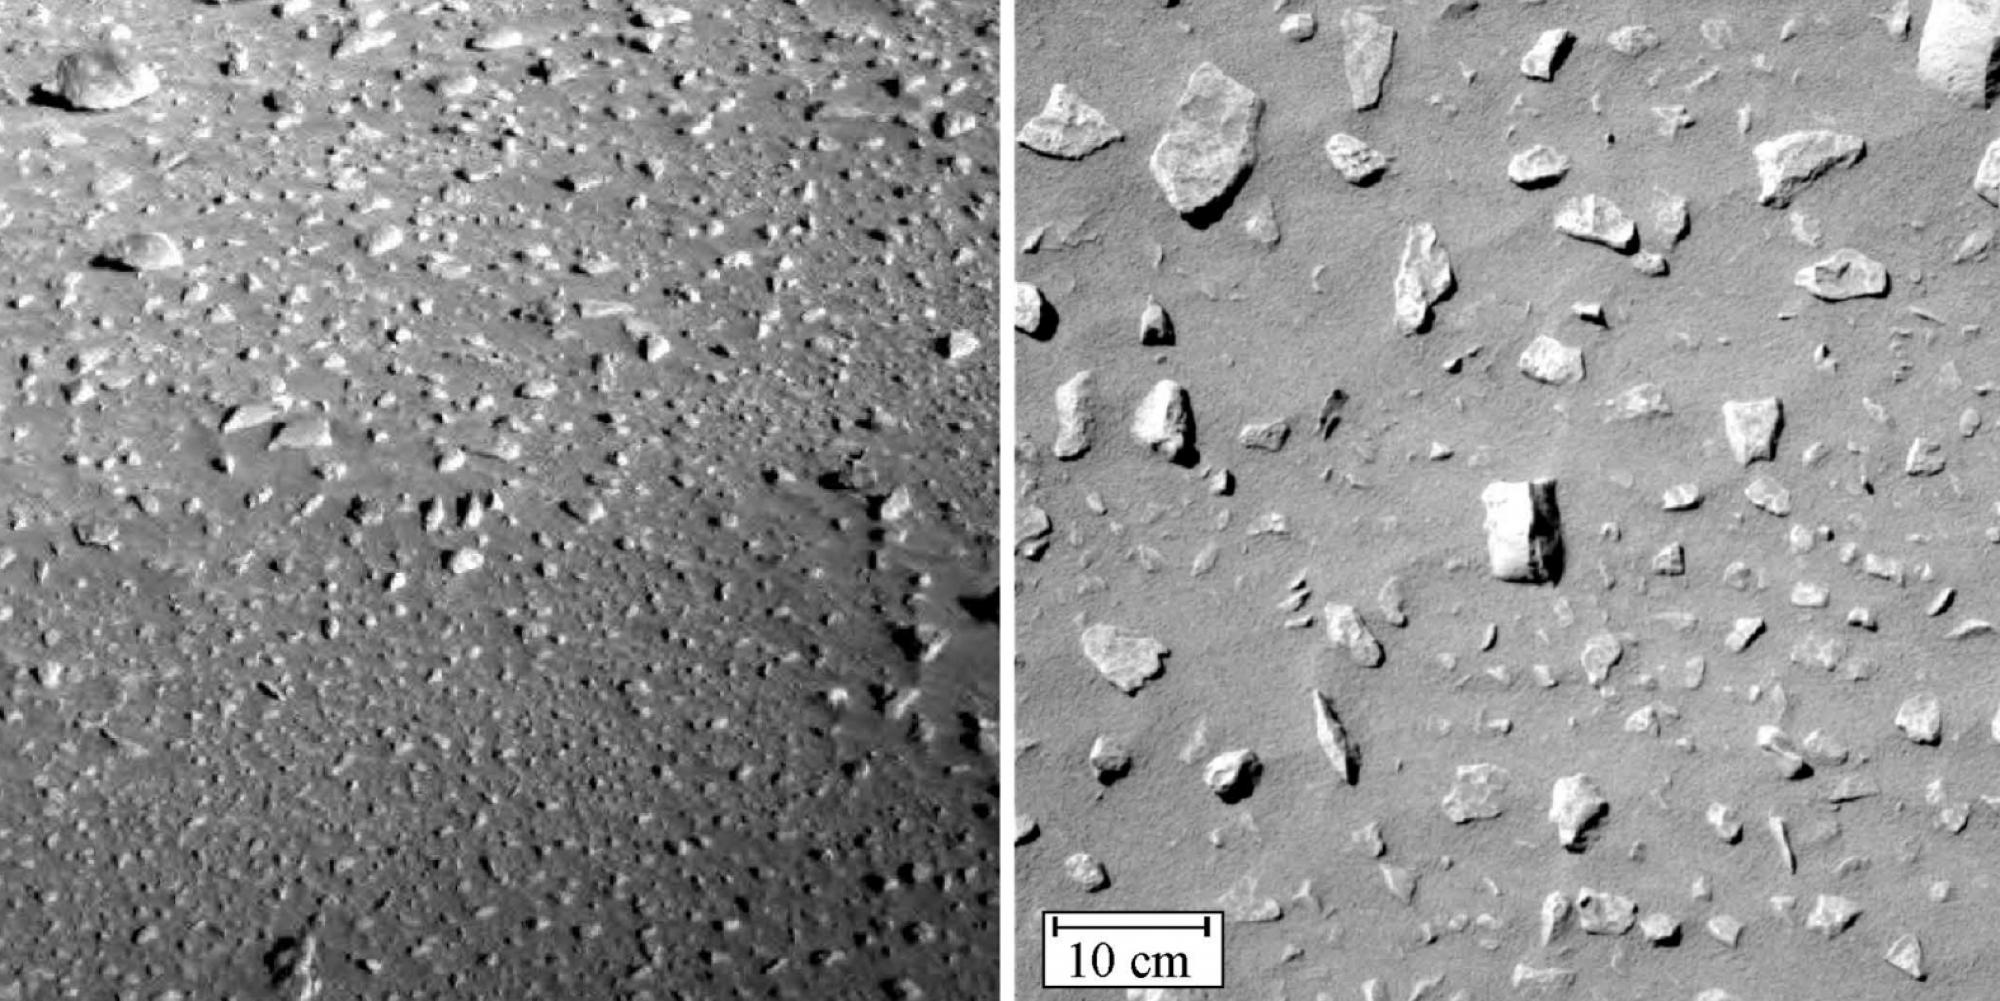 These Spirit Rover camera images of the intercrater plain between Mars' Lahontan Crater show uniformly spaced small rocks, known as clasts.